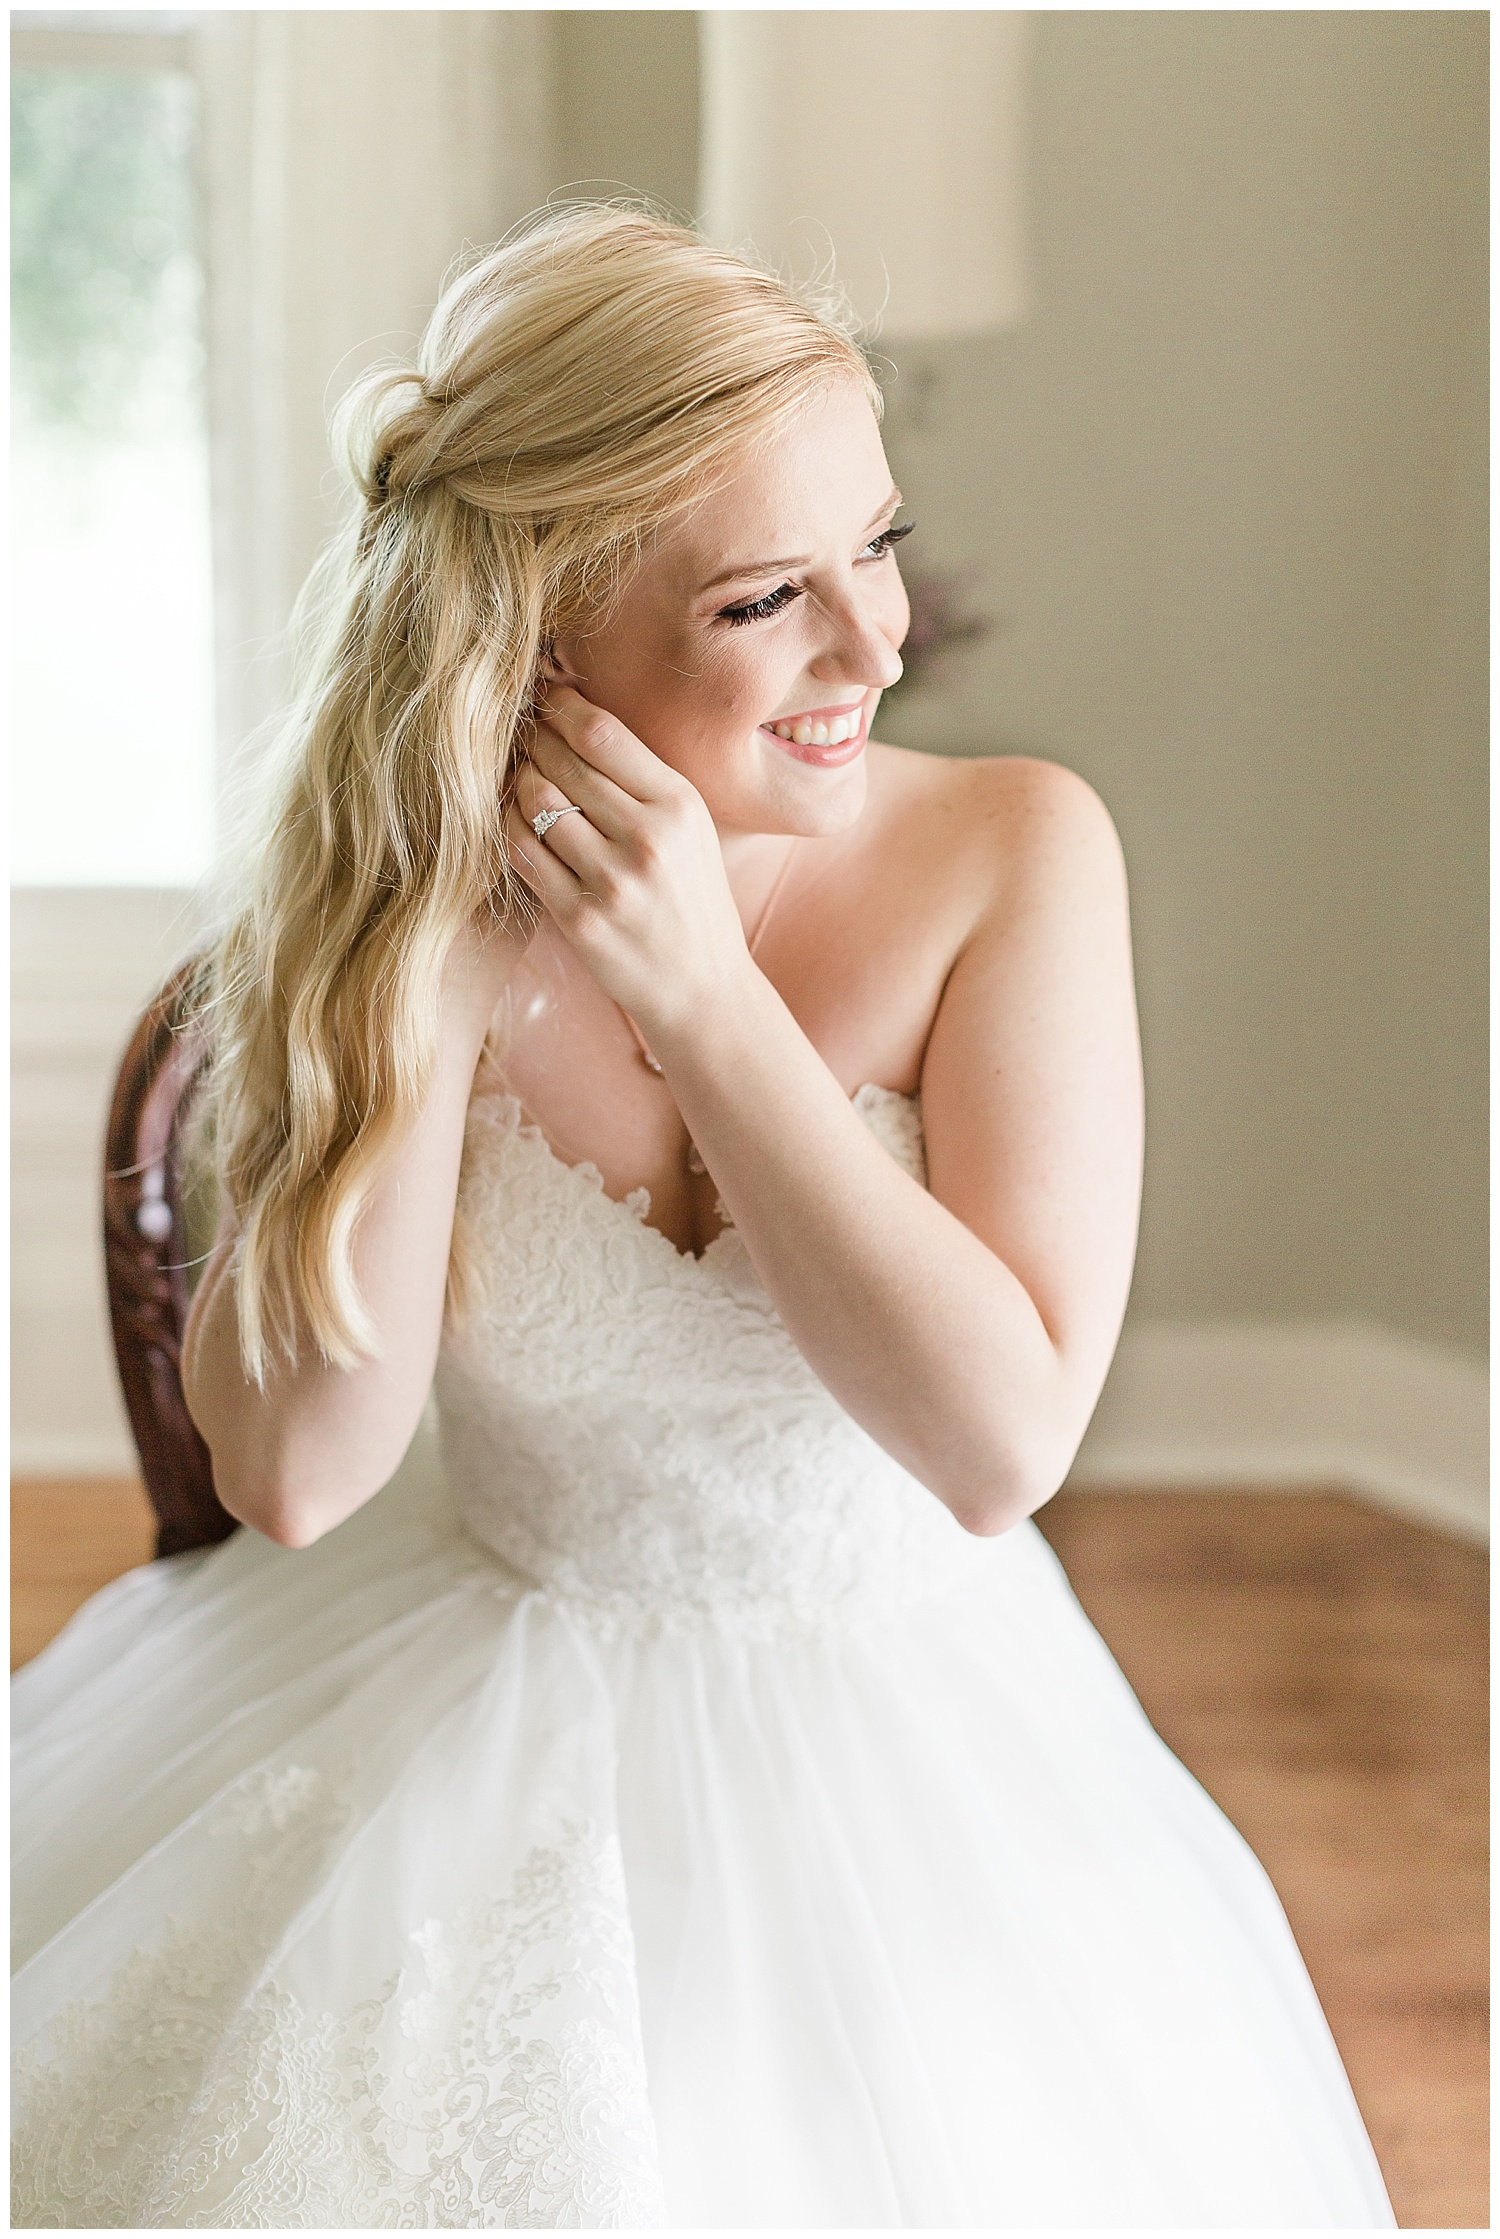 chicago-wedding-photographer-summer-ashley-farms-yorkville-light-airy-lace-dress_0008.jpg